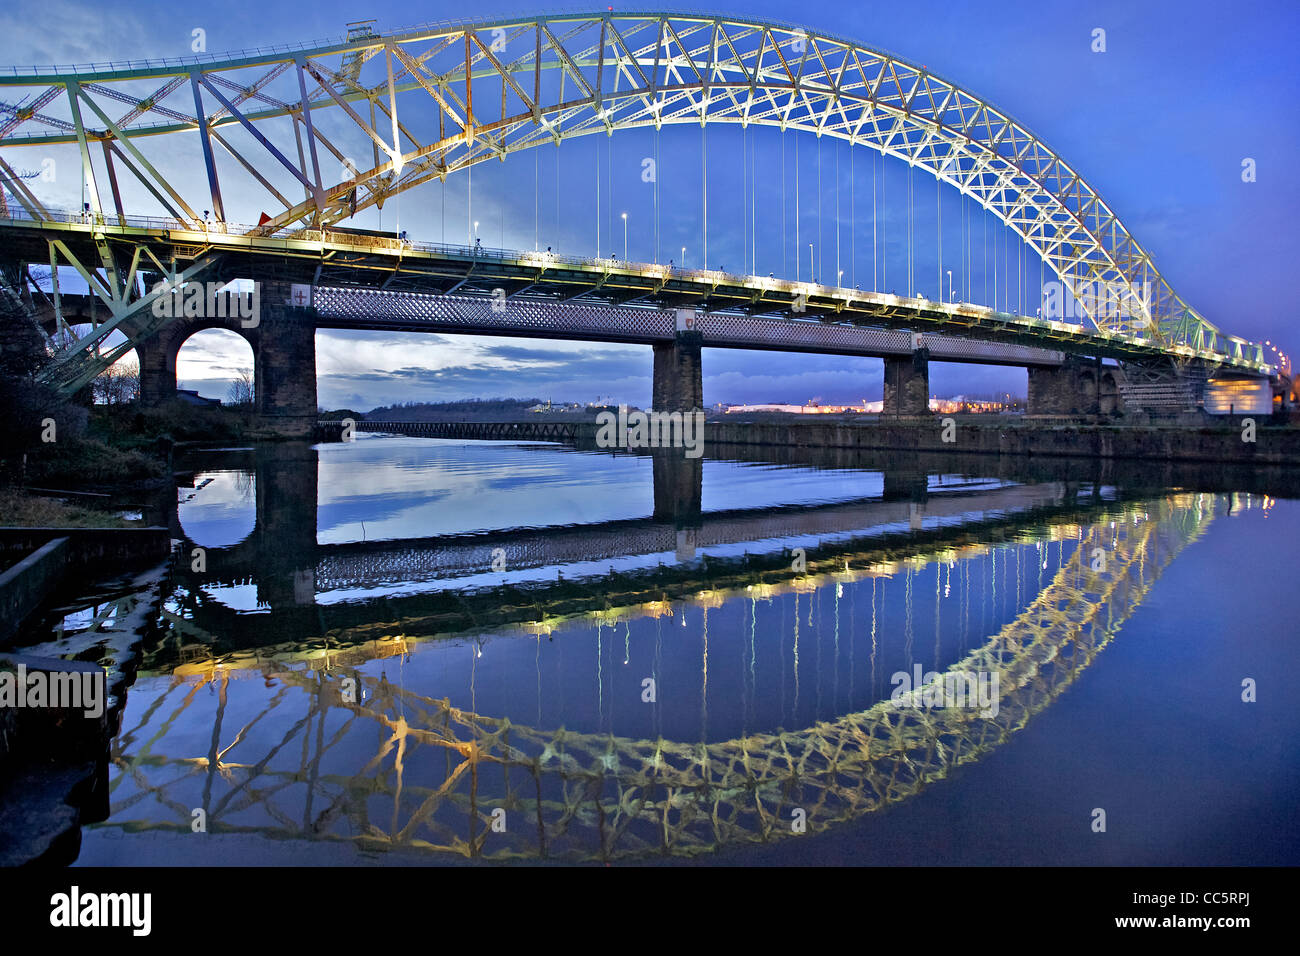 The Queensway bridge over the river Mersey between Runcorn and Widnes seen across the Manchester ship canal from - Stock Image